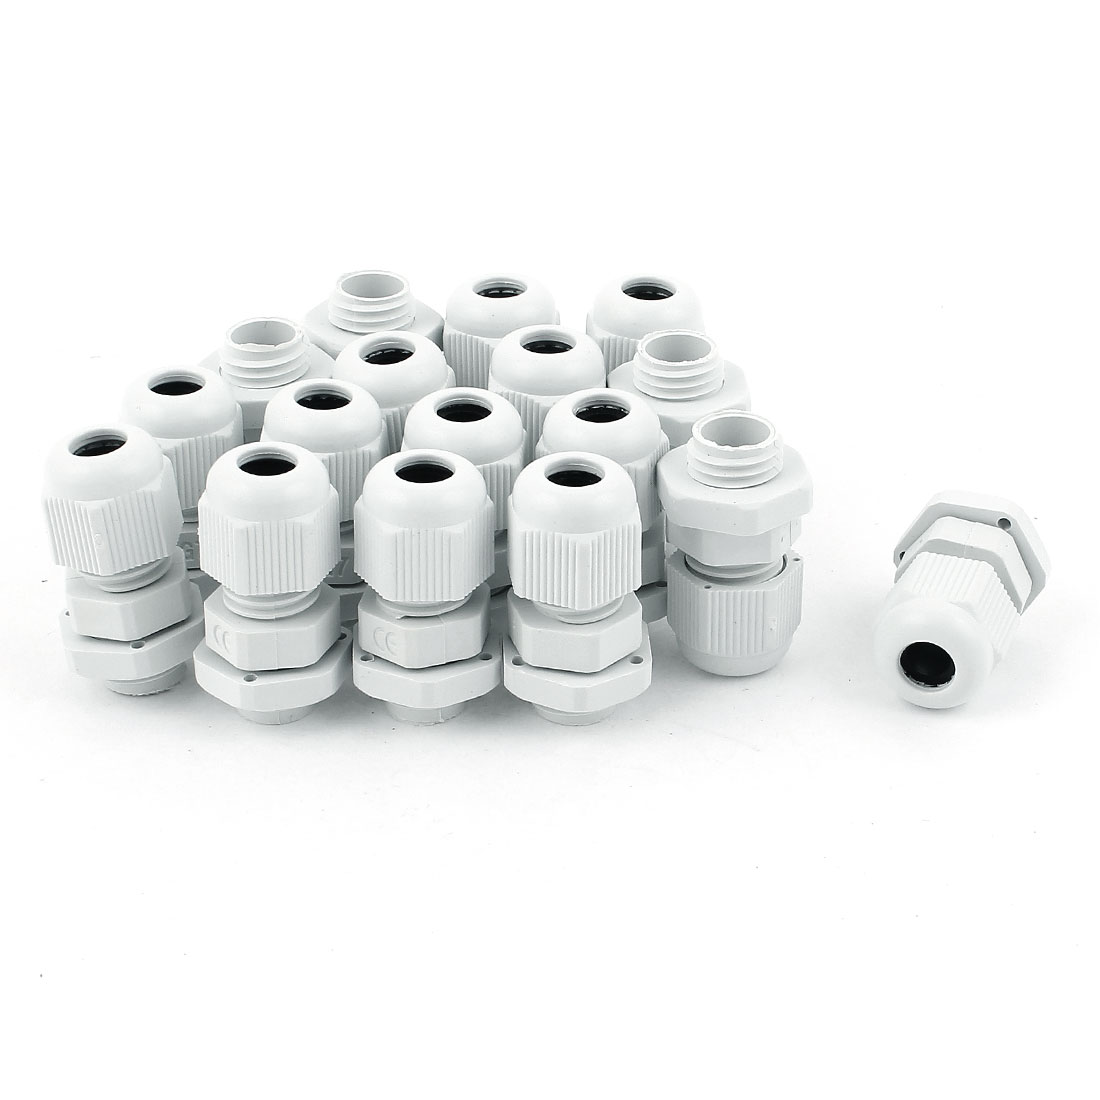 17pcs PG7 Waterproof Cable Glands Plastic Connector for 3-6.5 mm Dia Wire